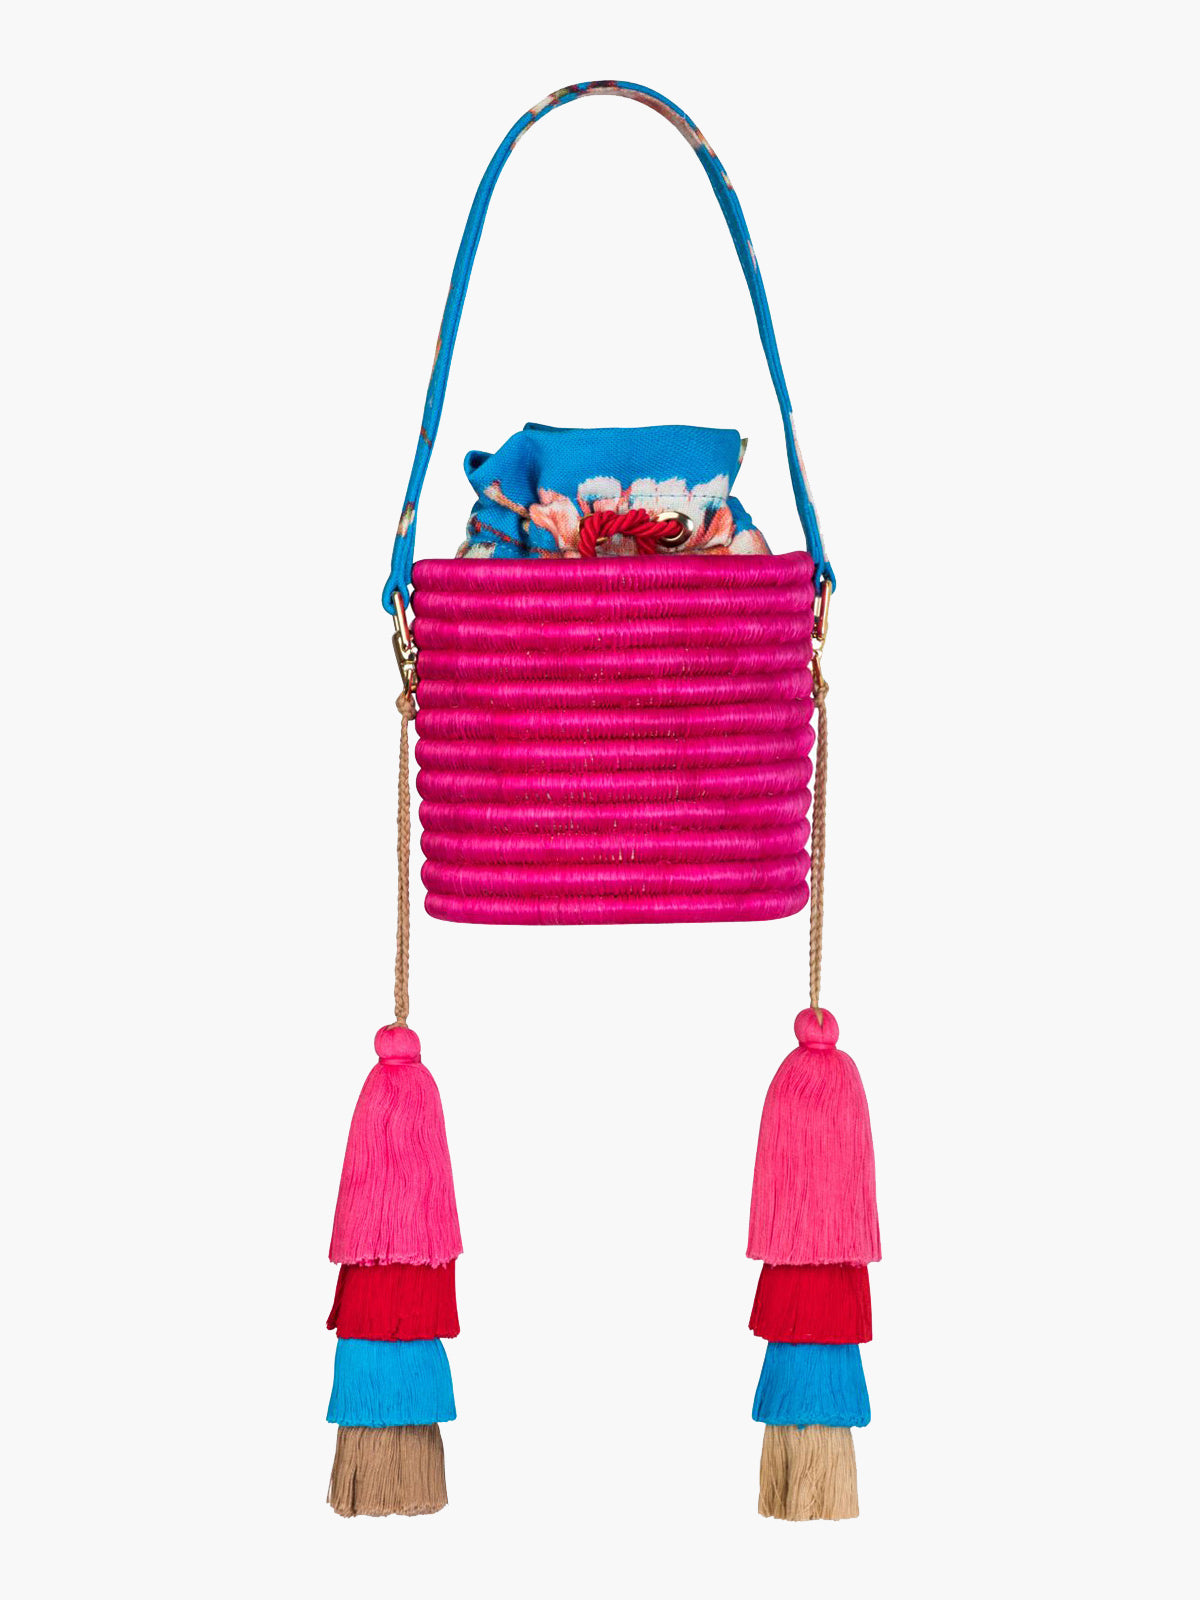 Bucket Bag | Mar y Rosas Bucket Bag | Mar y Rosas